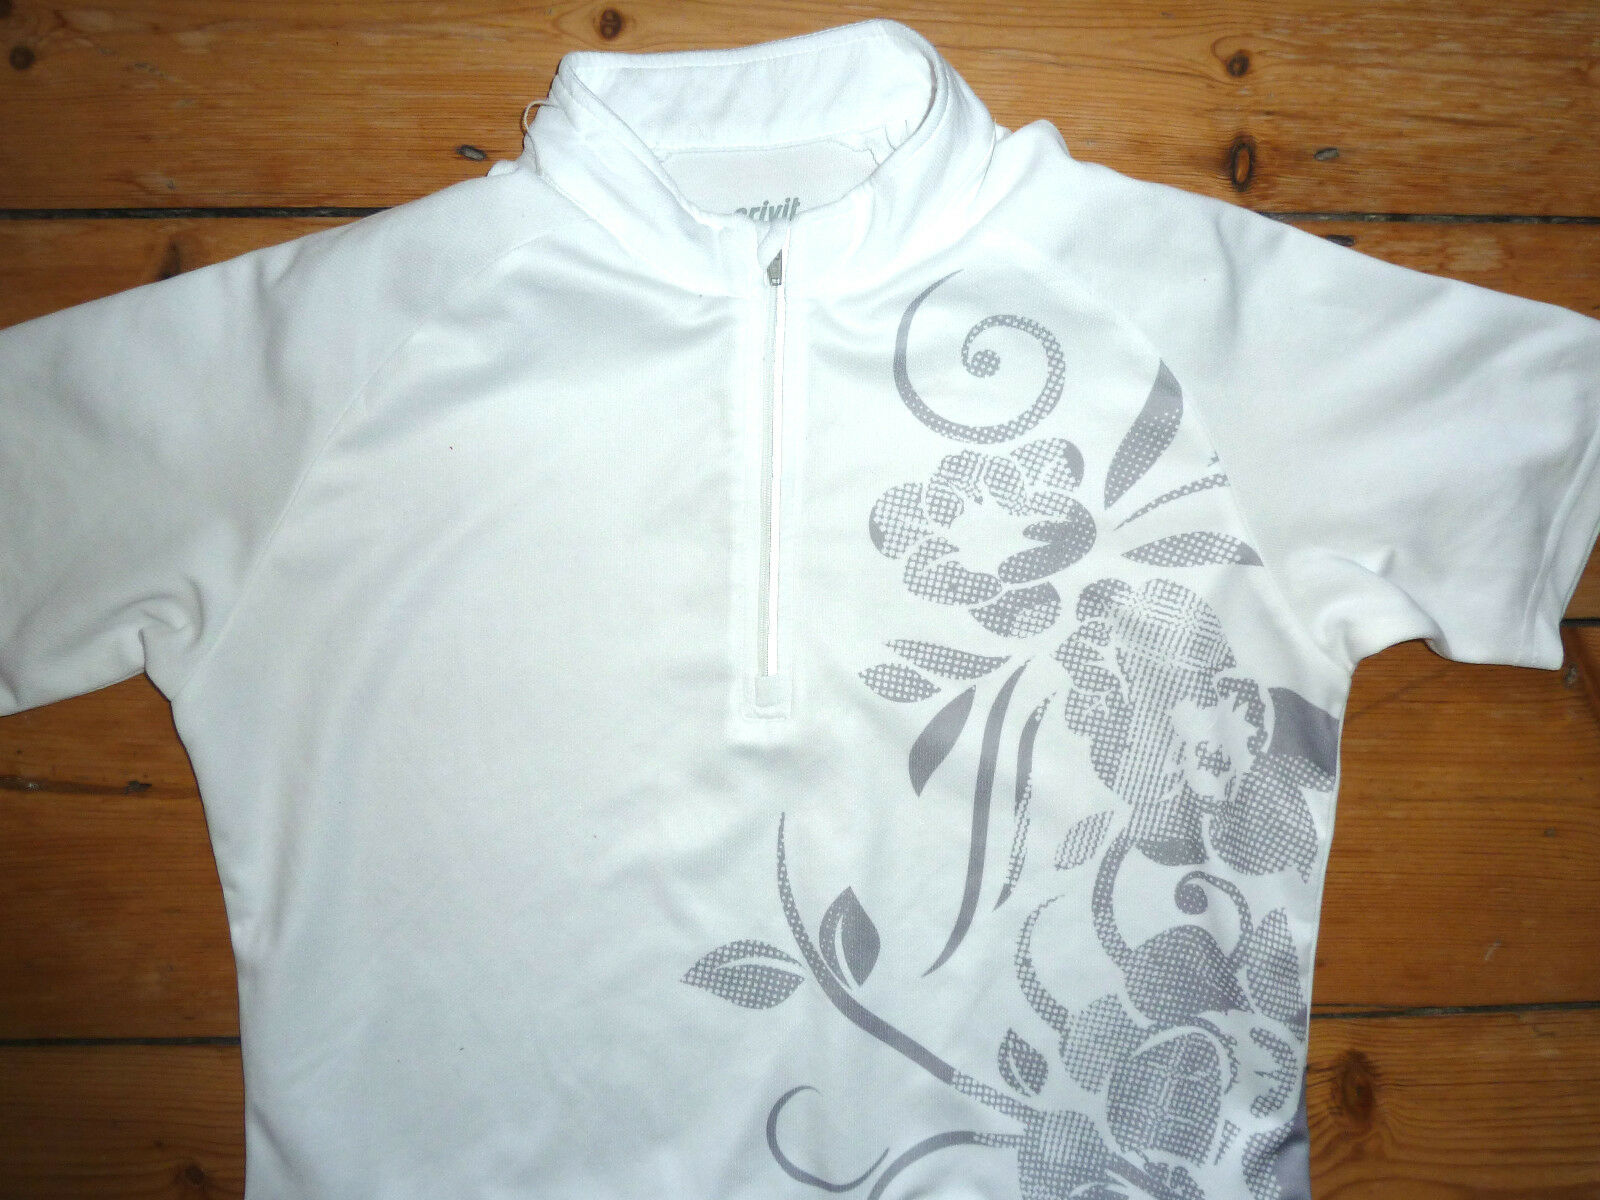 white Uni Cyclisme Maillot Grand Cycle Artistique Conception Velo Gilet Crivit